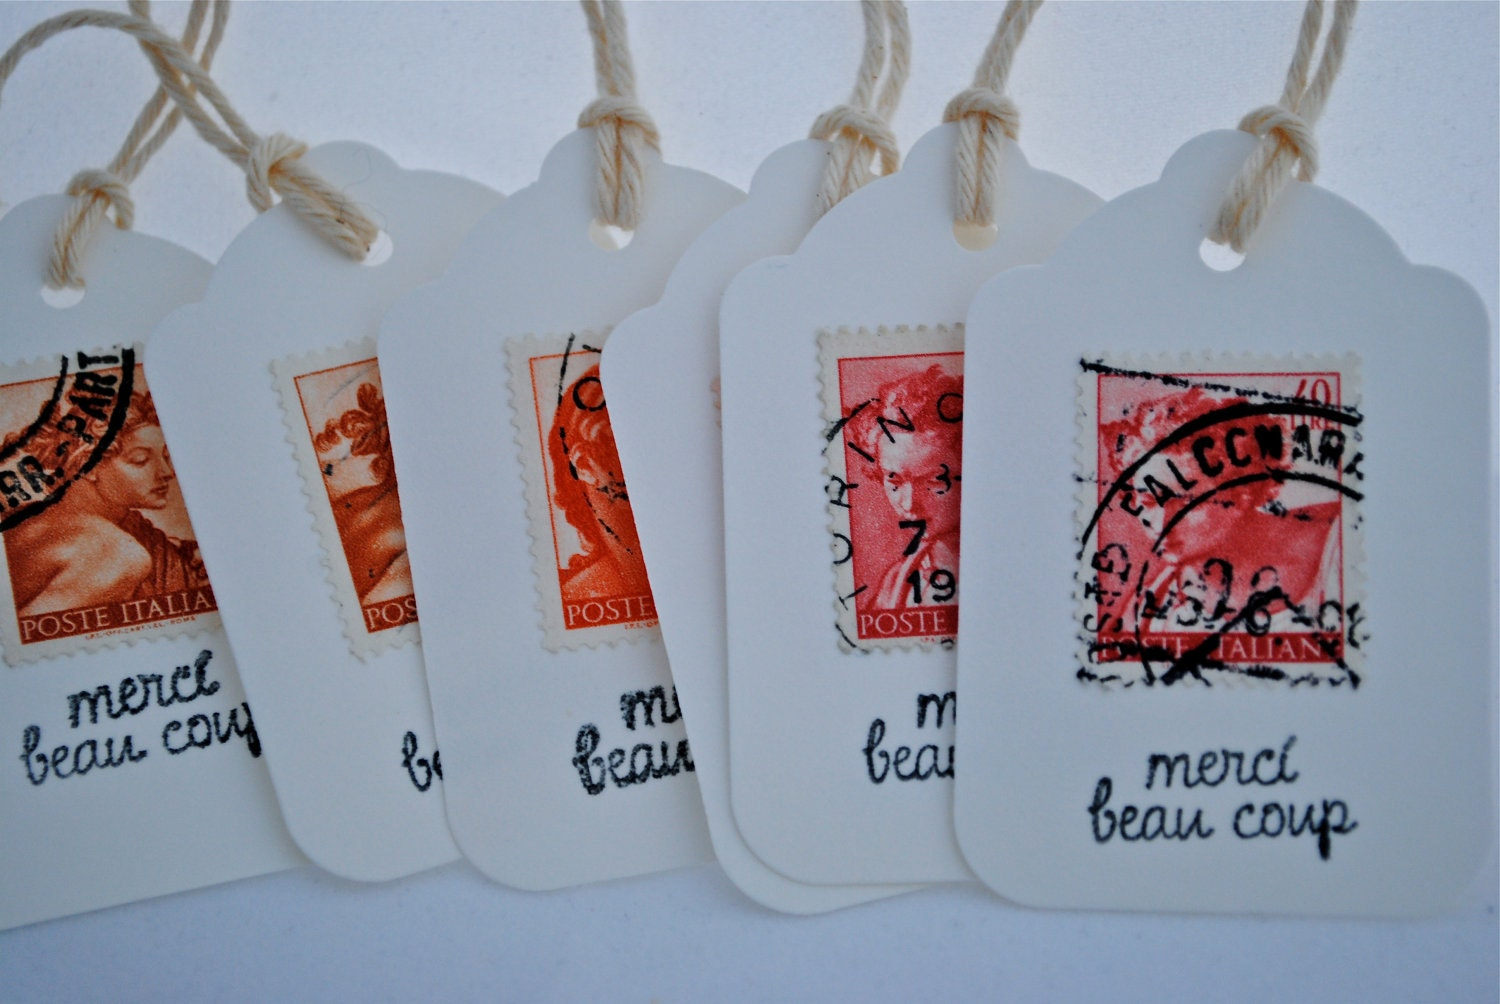 6 Vintage Postage Stamps thank you Tags - You choose color scheme - Merci beau coup